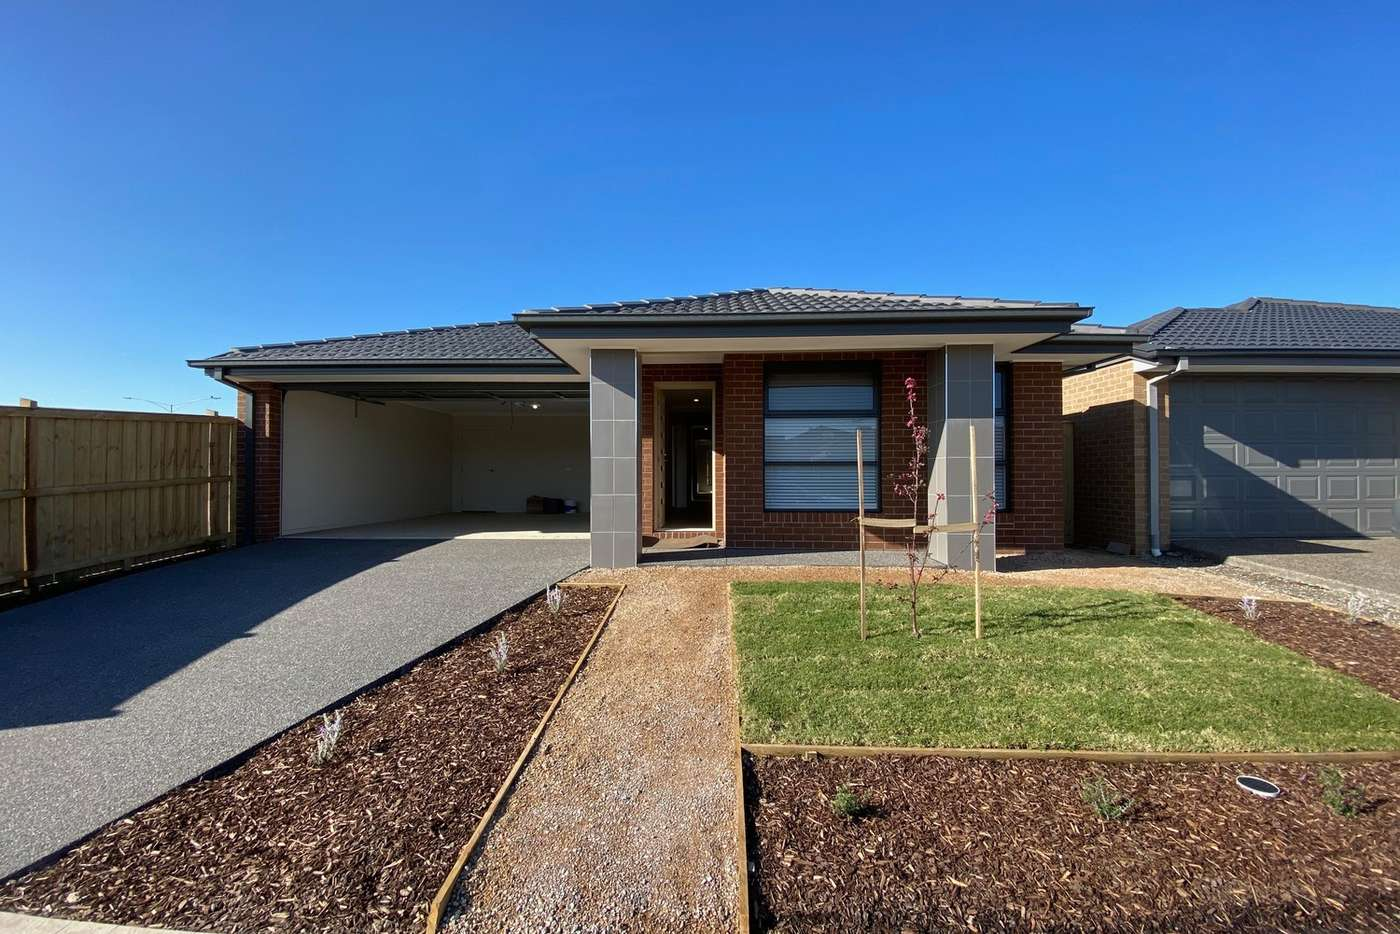 Main view of Homely house listing, 3 Gunnersbury Road, Wyndham Vale VIC 3024